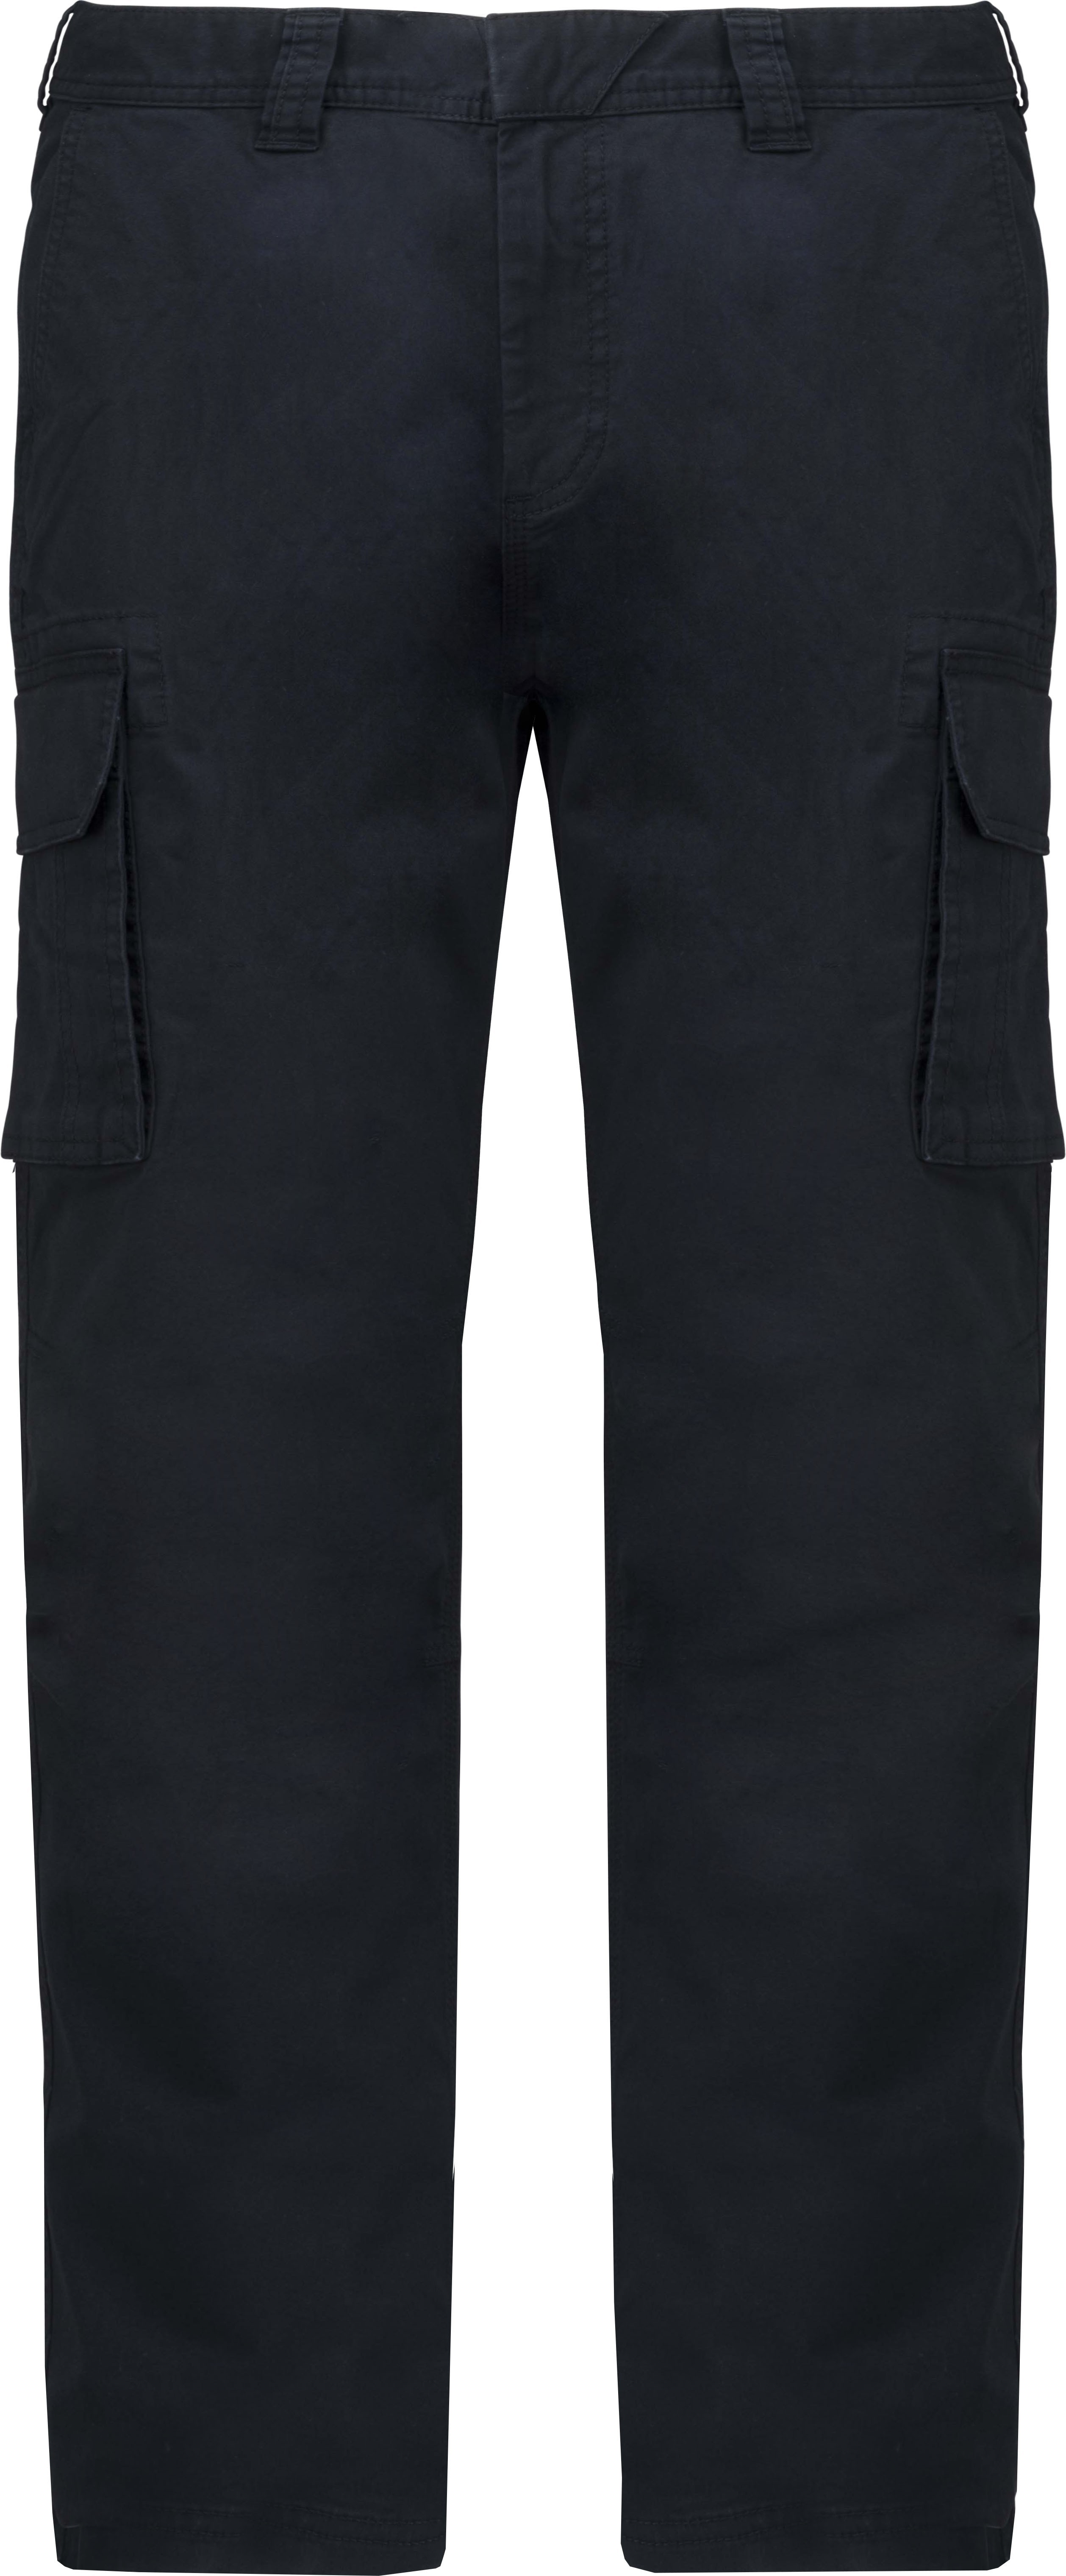 Pantalon multipoches homme - 2-1573-3